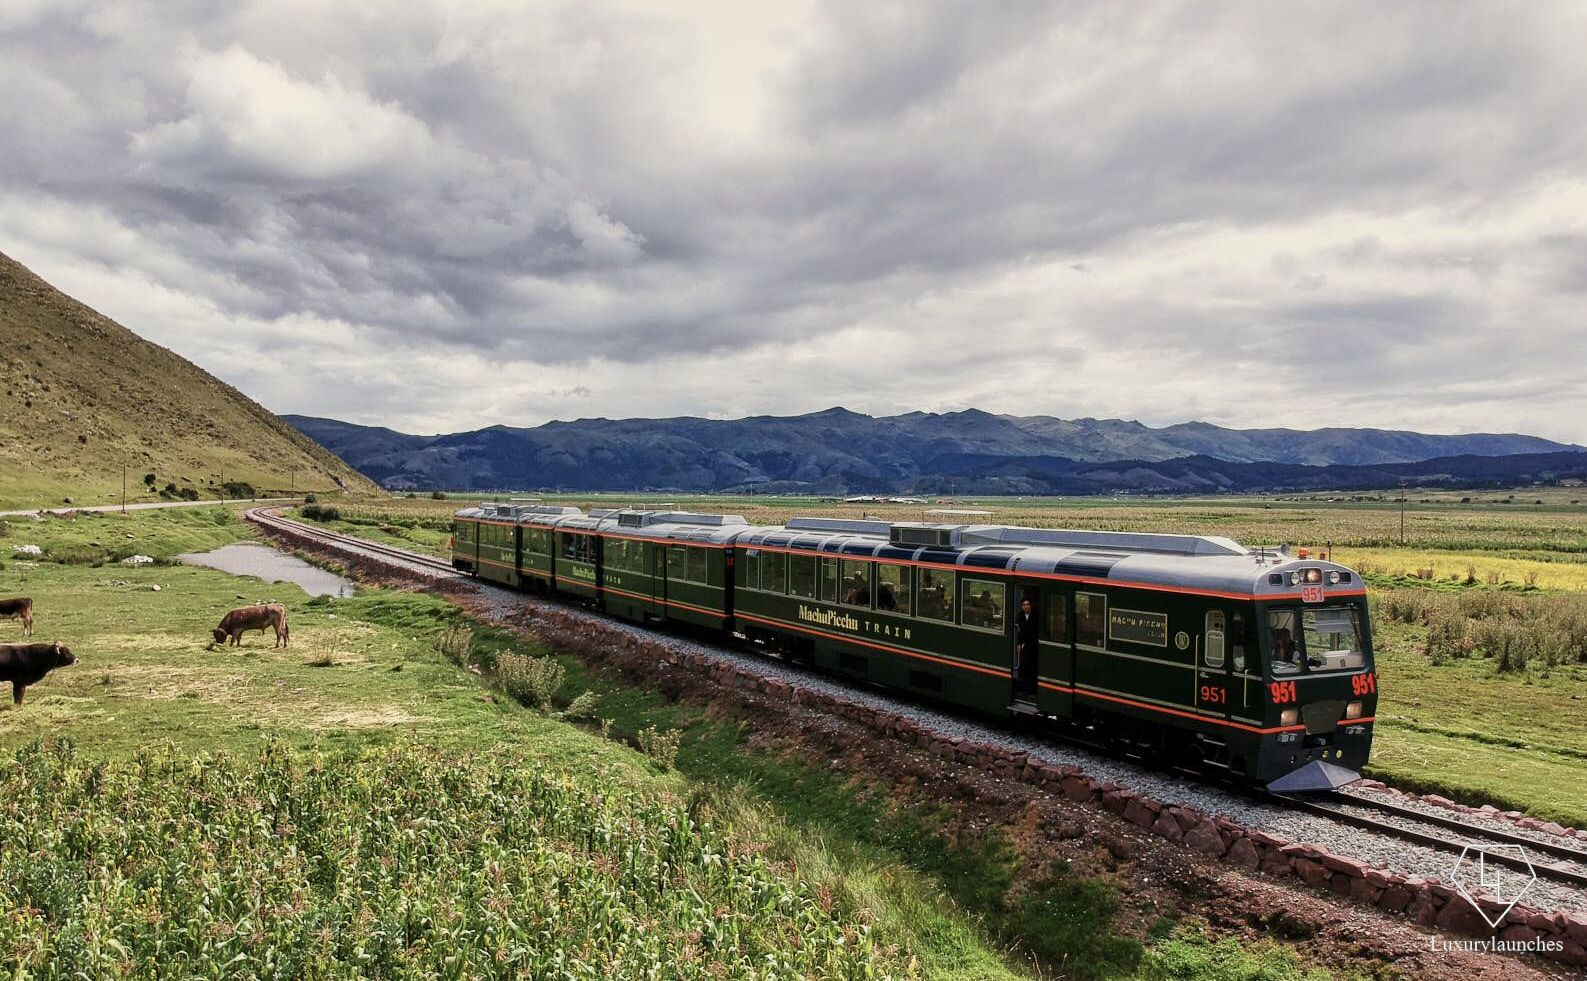 360° Machu Picchu Train is the most scenic way to enjoy Peru's most famous ruins